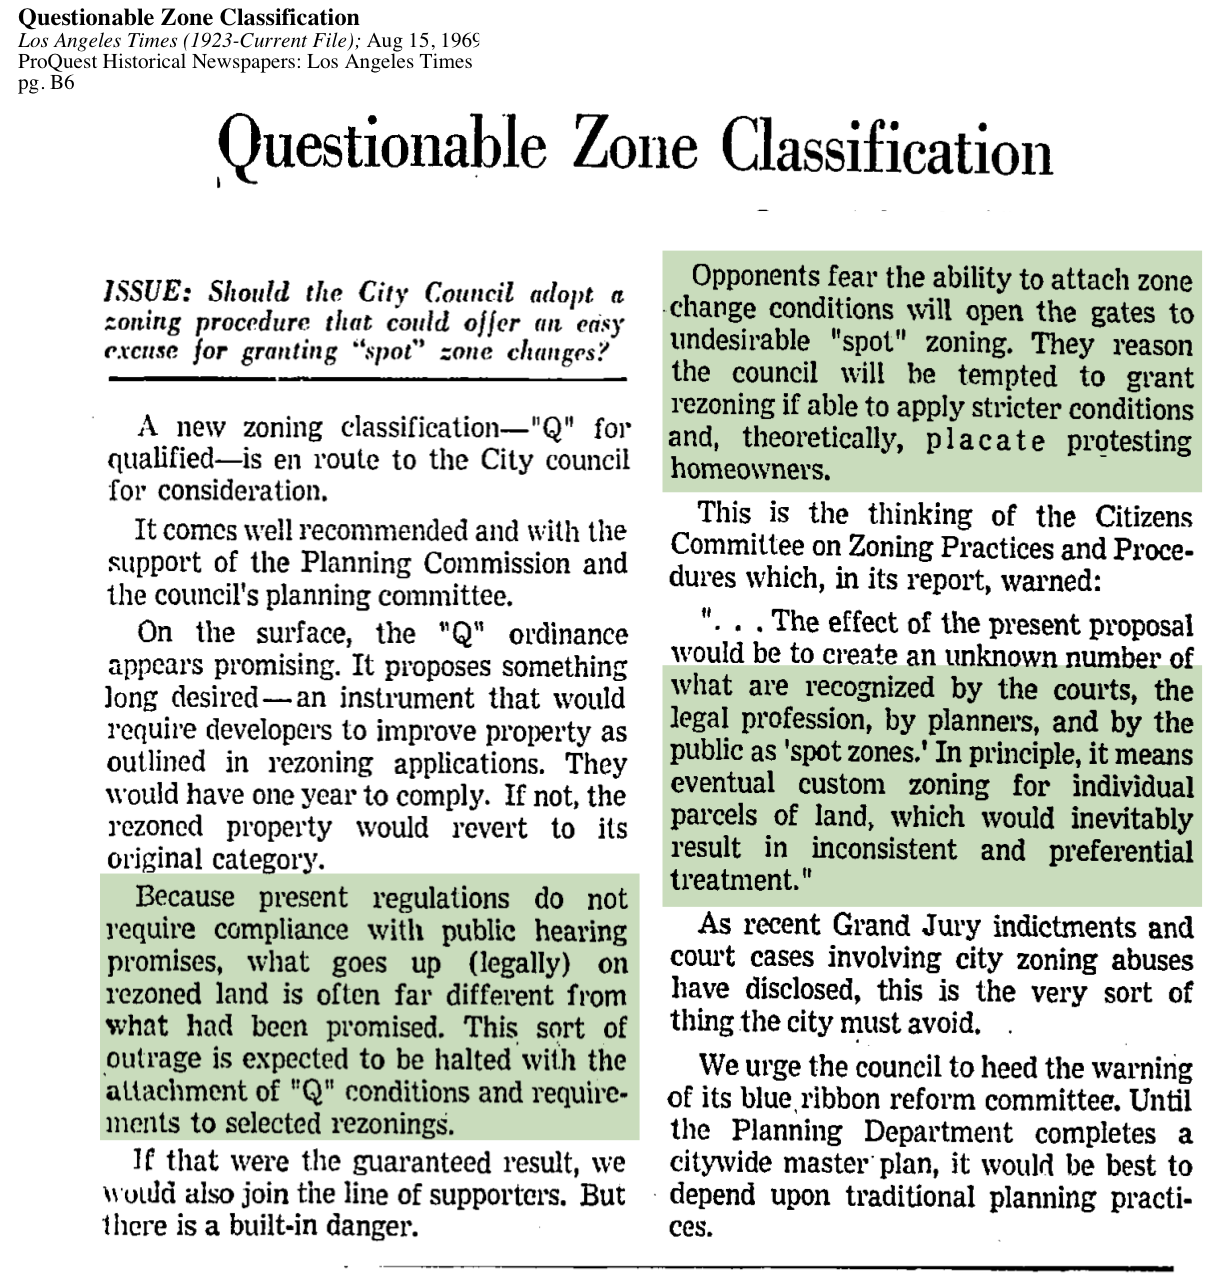 1969-Questionable Zoning Classification